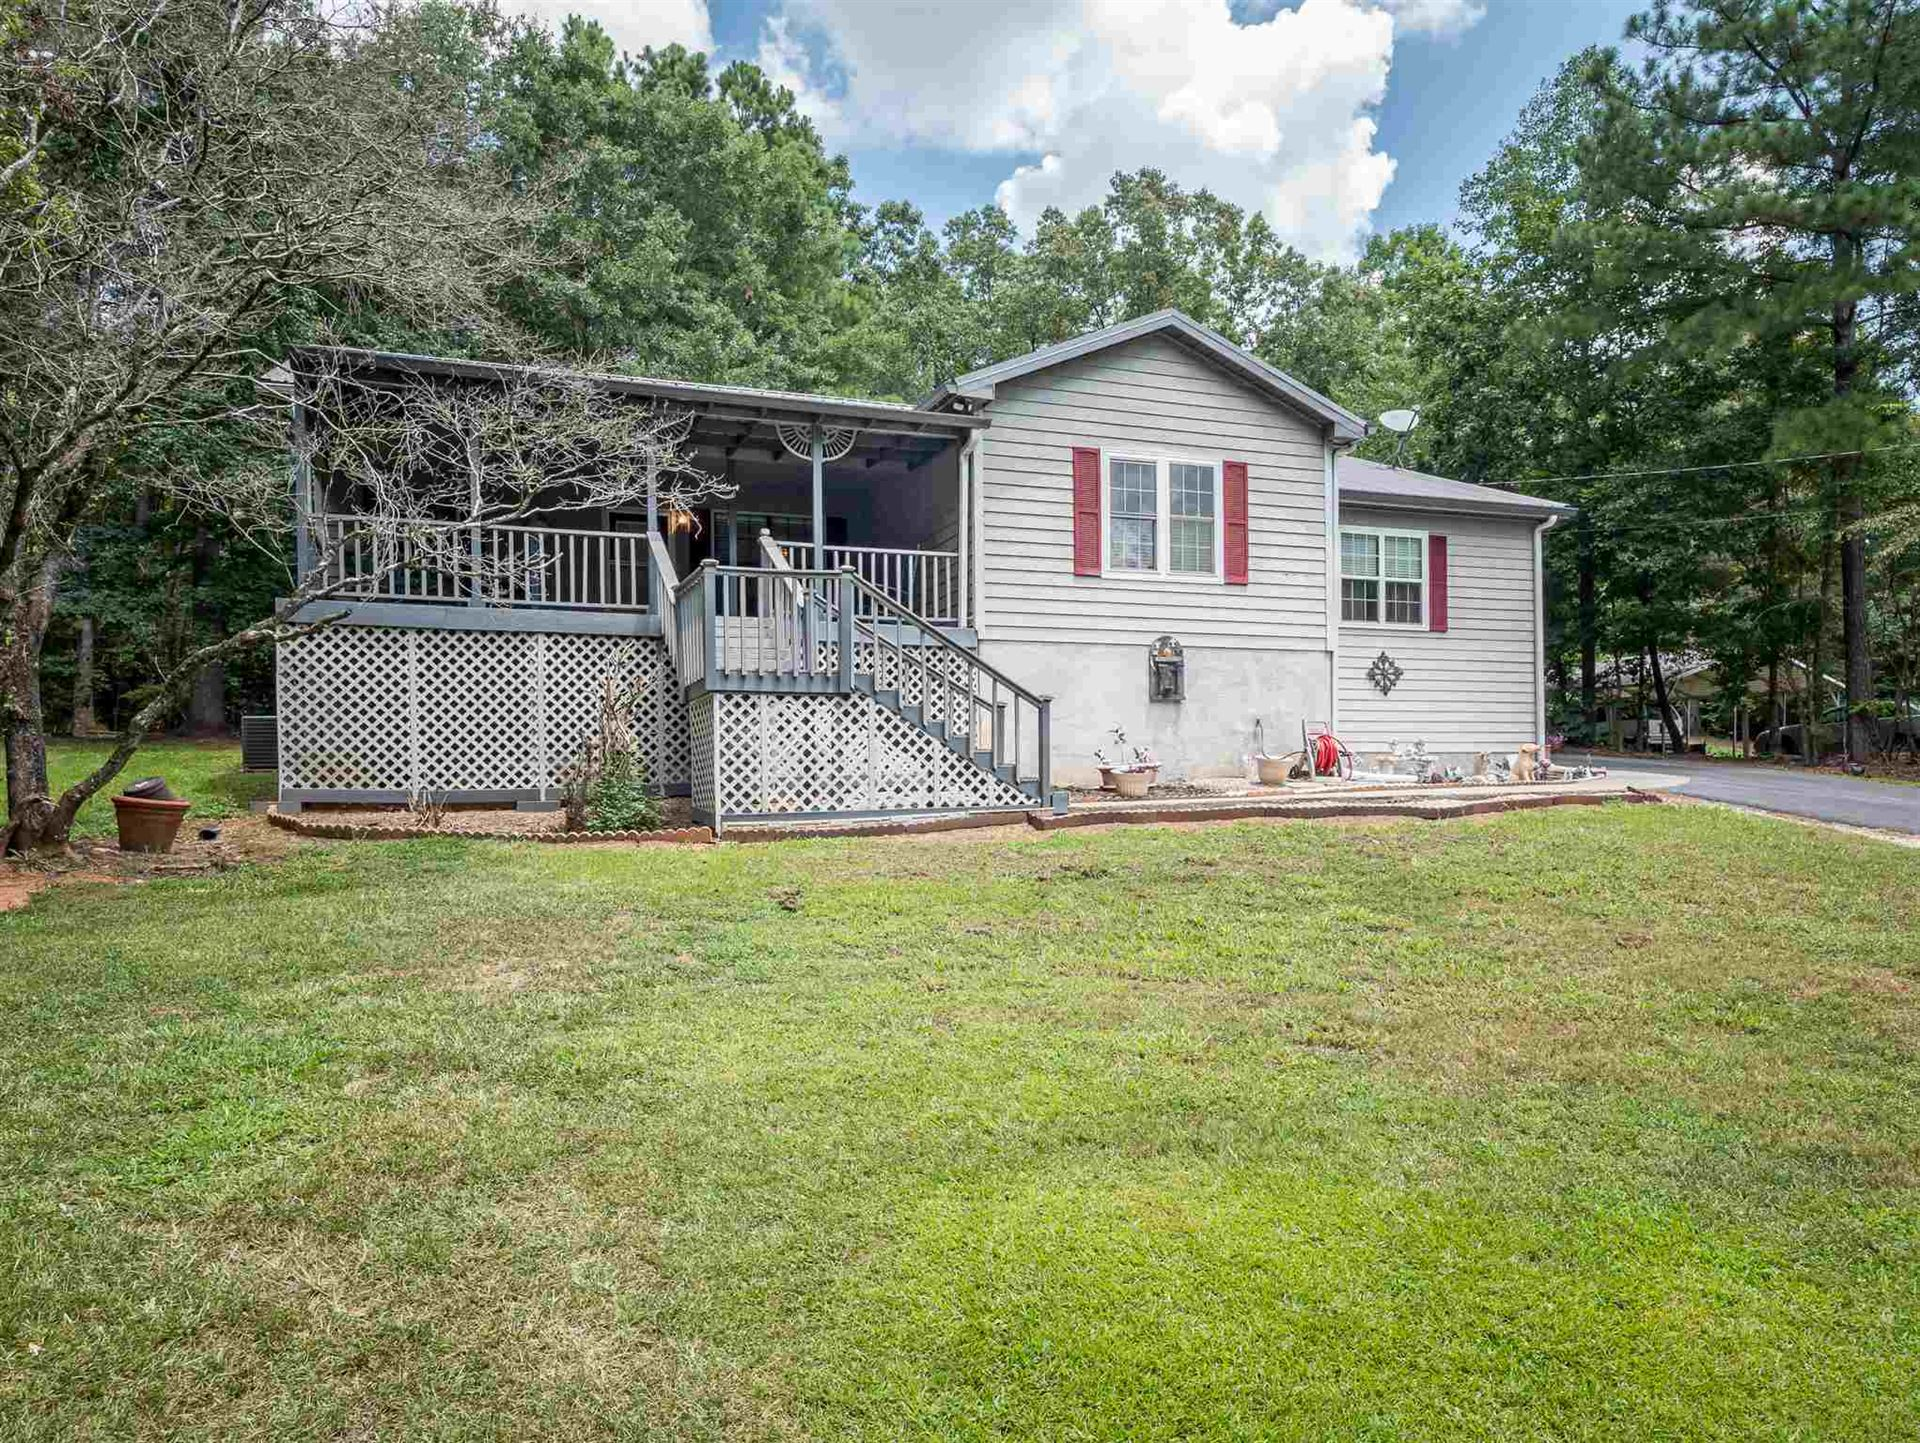 367 Haley Rd, Jackson, GA 30233 - MLS#: 8830542